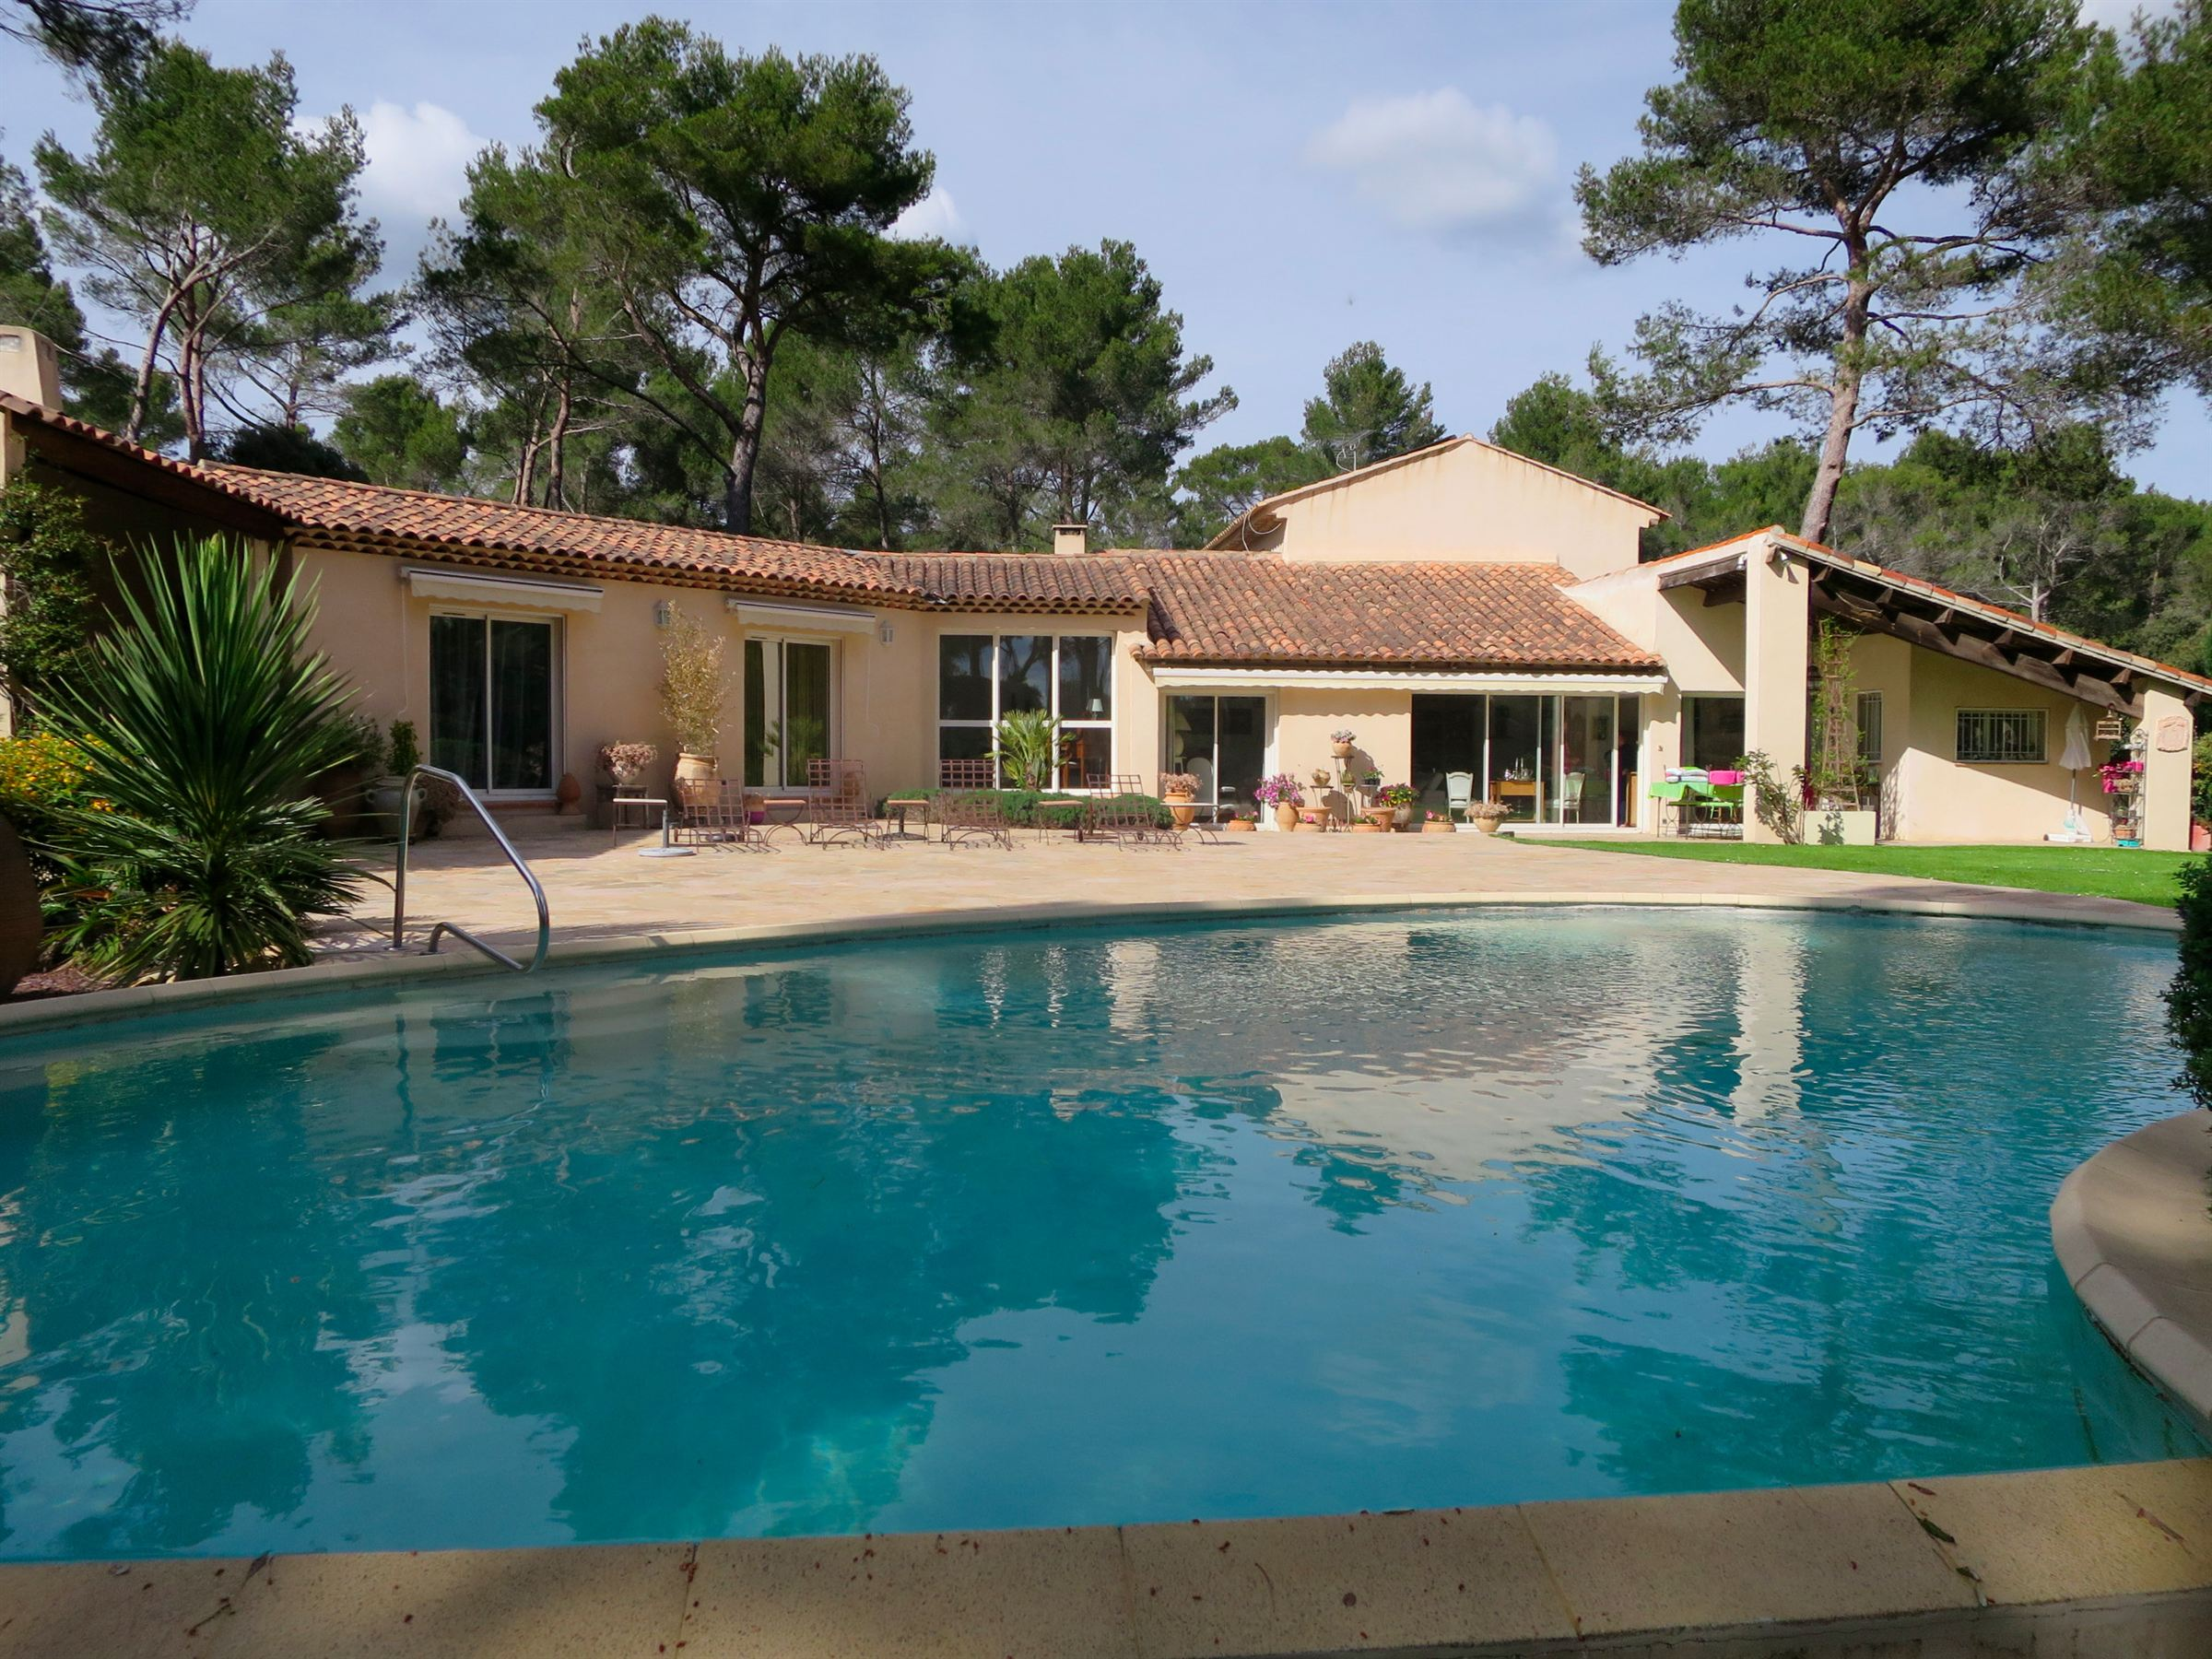 Single Family Home for Sale at SAINT MARC JAUMEGARDE Other Provence-Alpes-Cote D'Azur, Provence-Alpes-Cote D'Azur, 13100 France